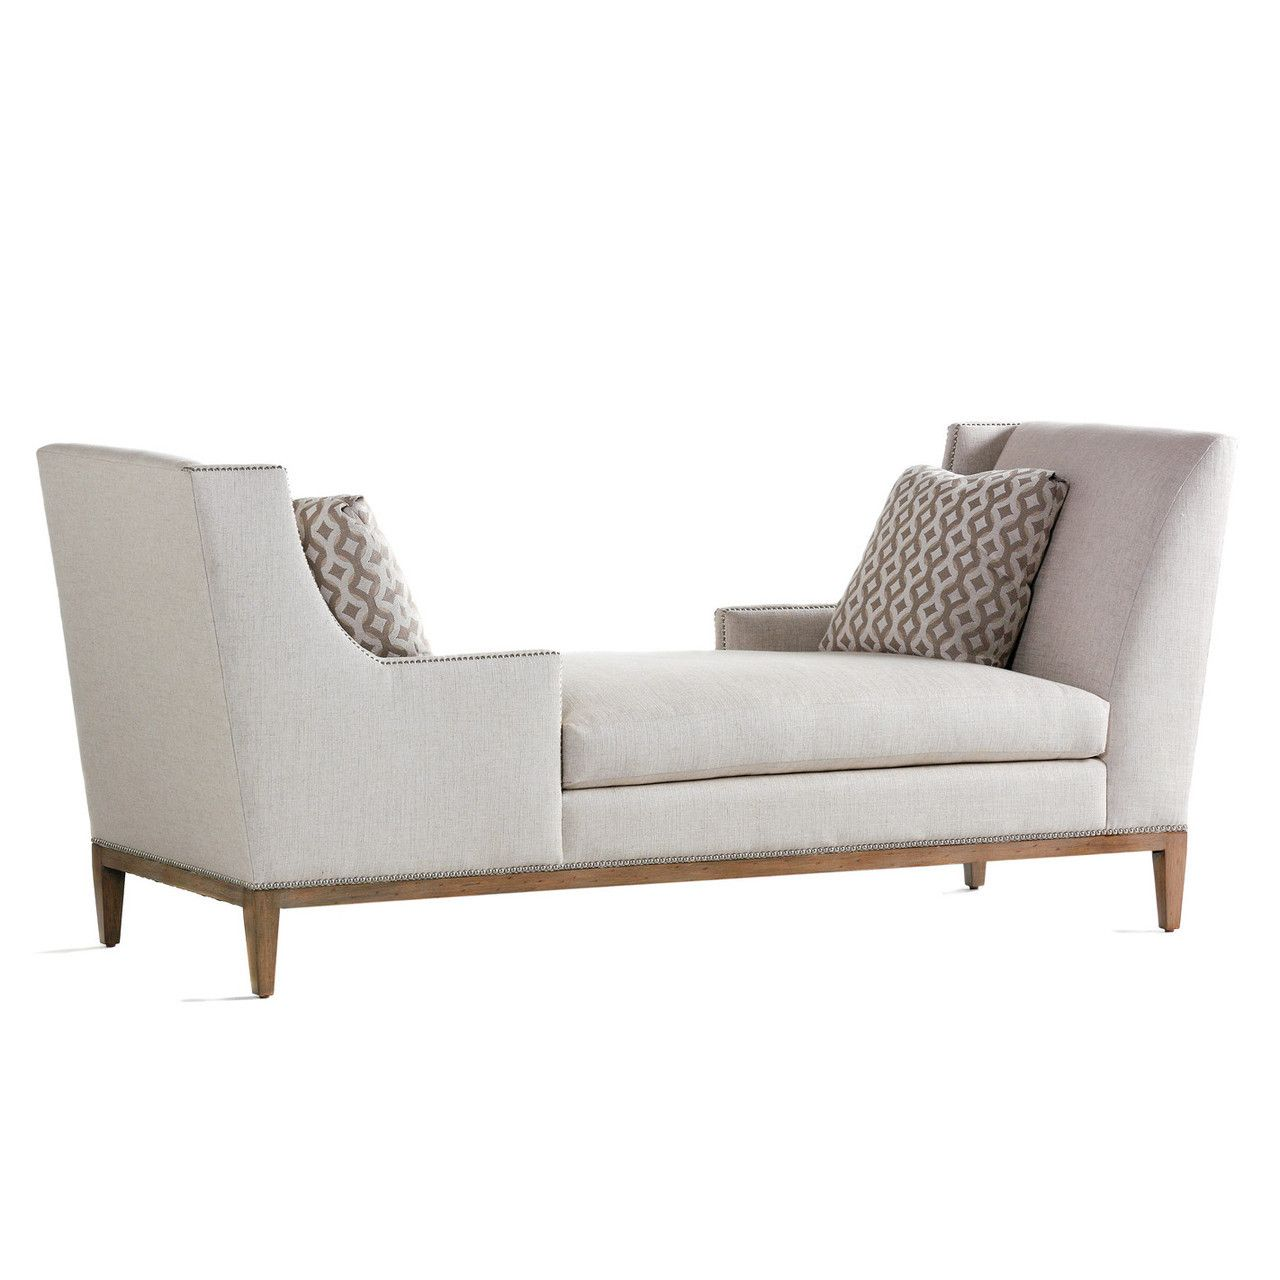 TWO SIDED CHAISE - Google Search  sc 1 st  Pinterest : two sided chaise - Sectionals, Sofas & Couches